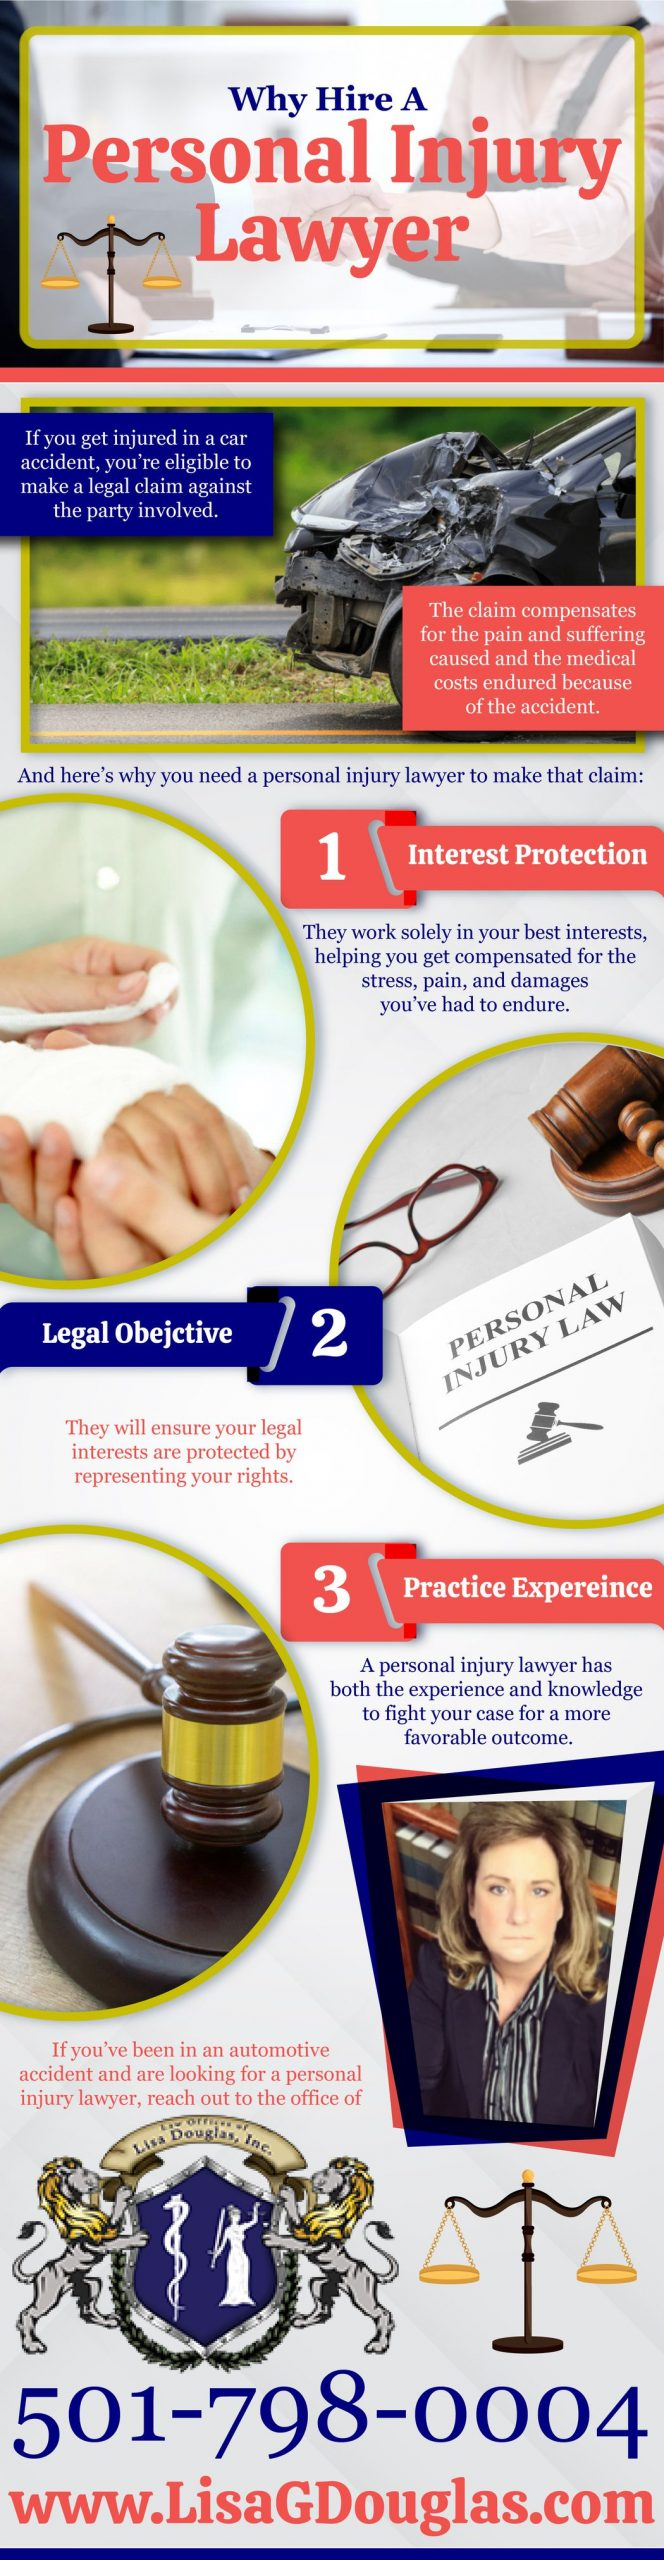 Why Hire A Personal Injury Lawyer